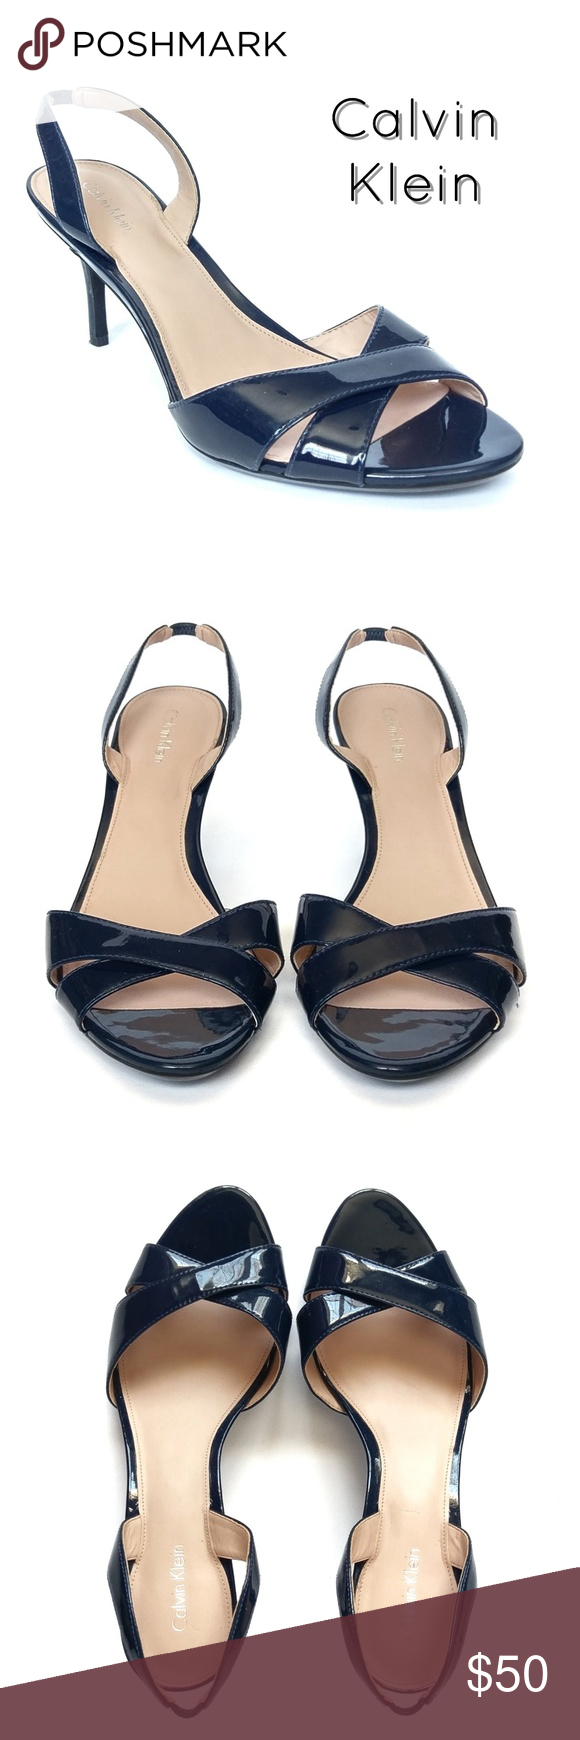 614f519fc4f Patent Leather Slingback Sandals EUC Calvin Klein navy blue Lucette patent  leather slingback heeled sandals.